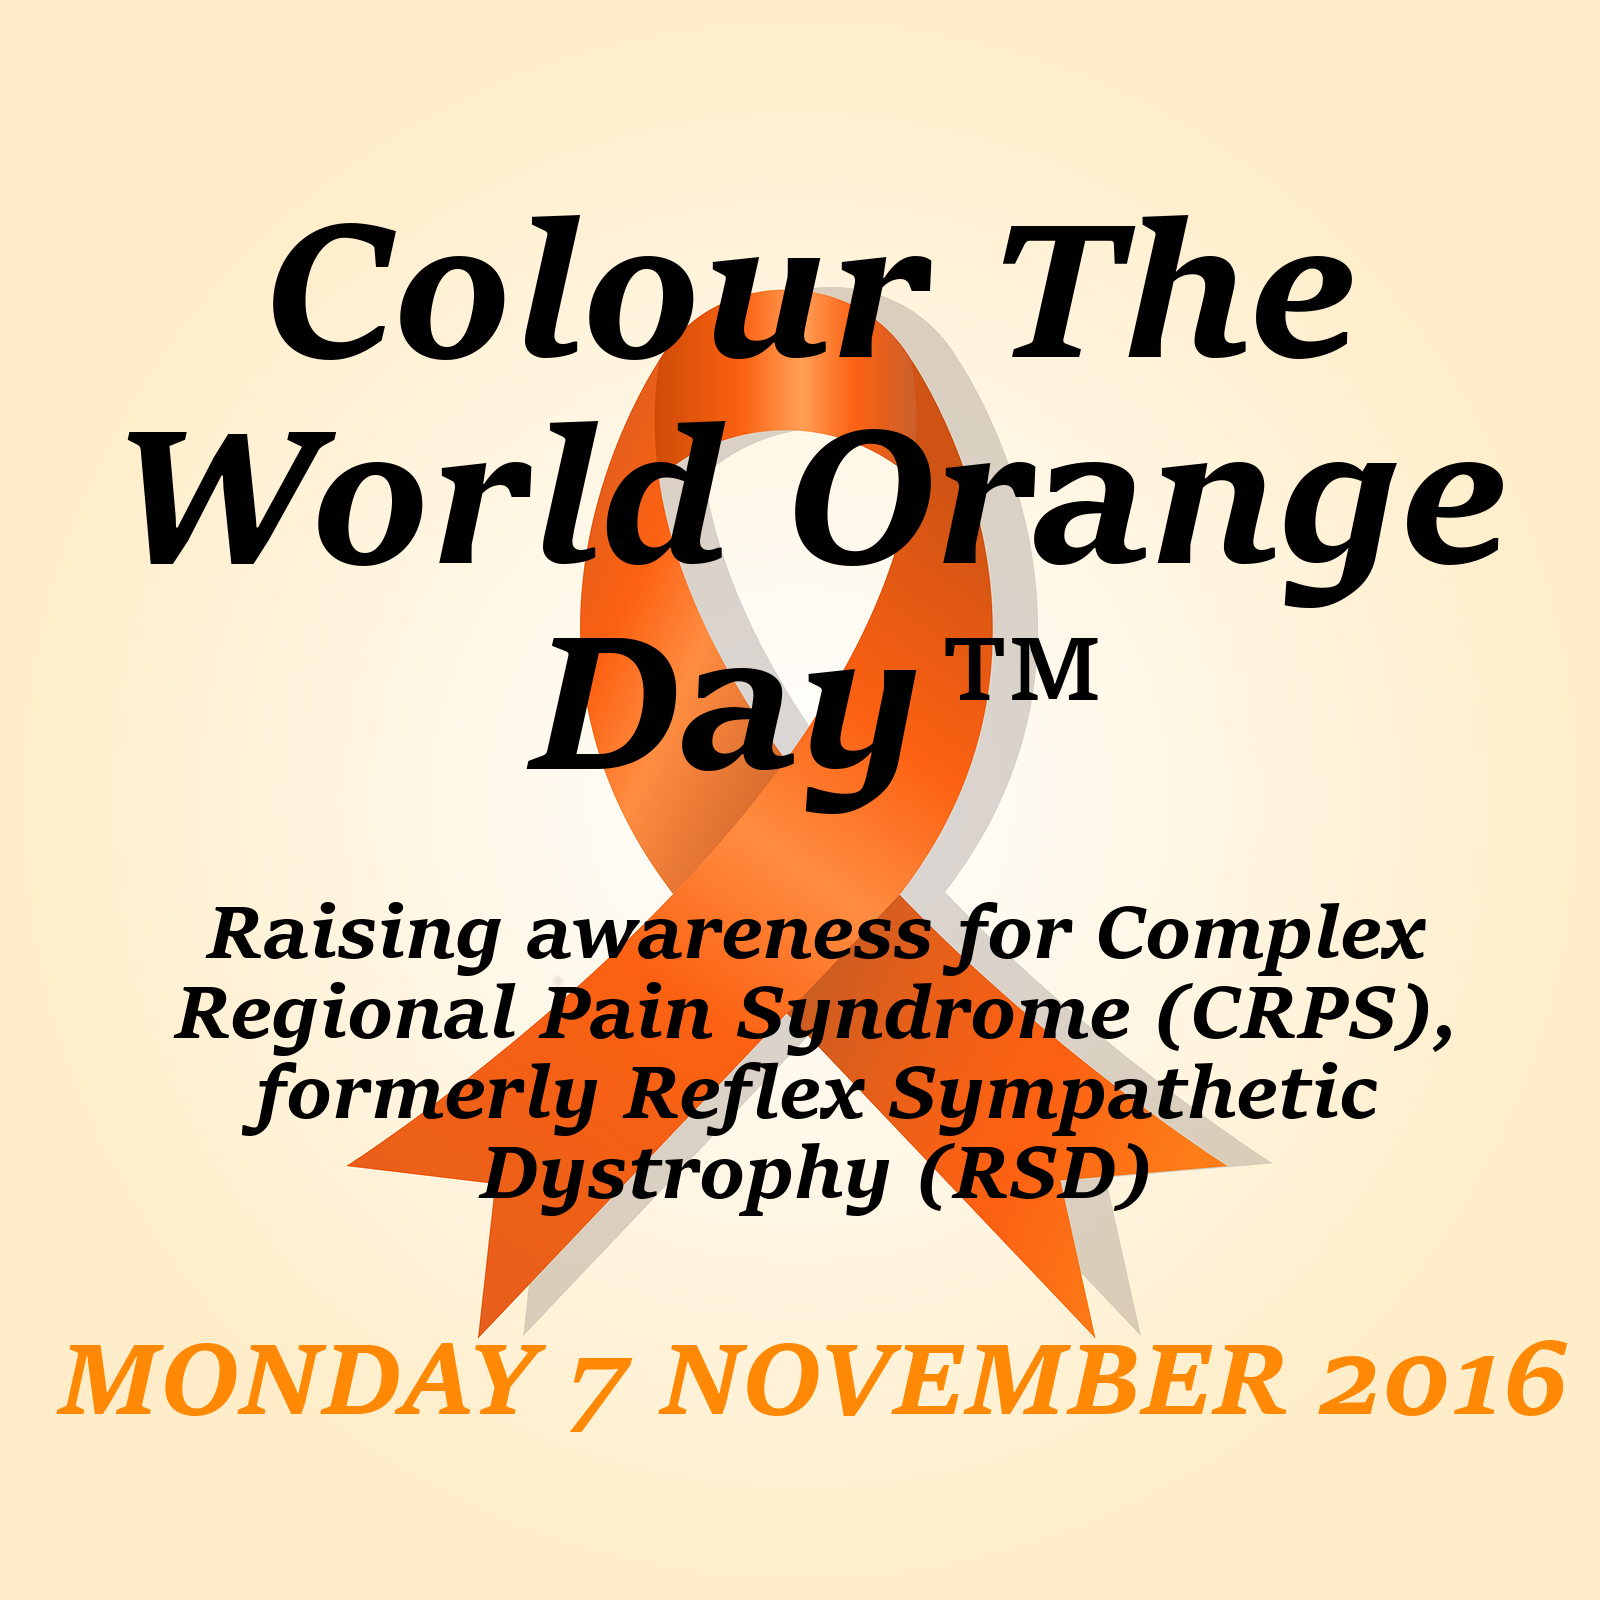 Colour The World Orange Day | CRPS Awareness Day